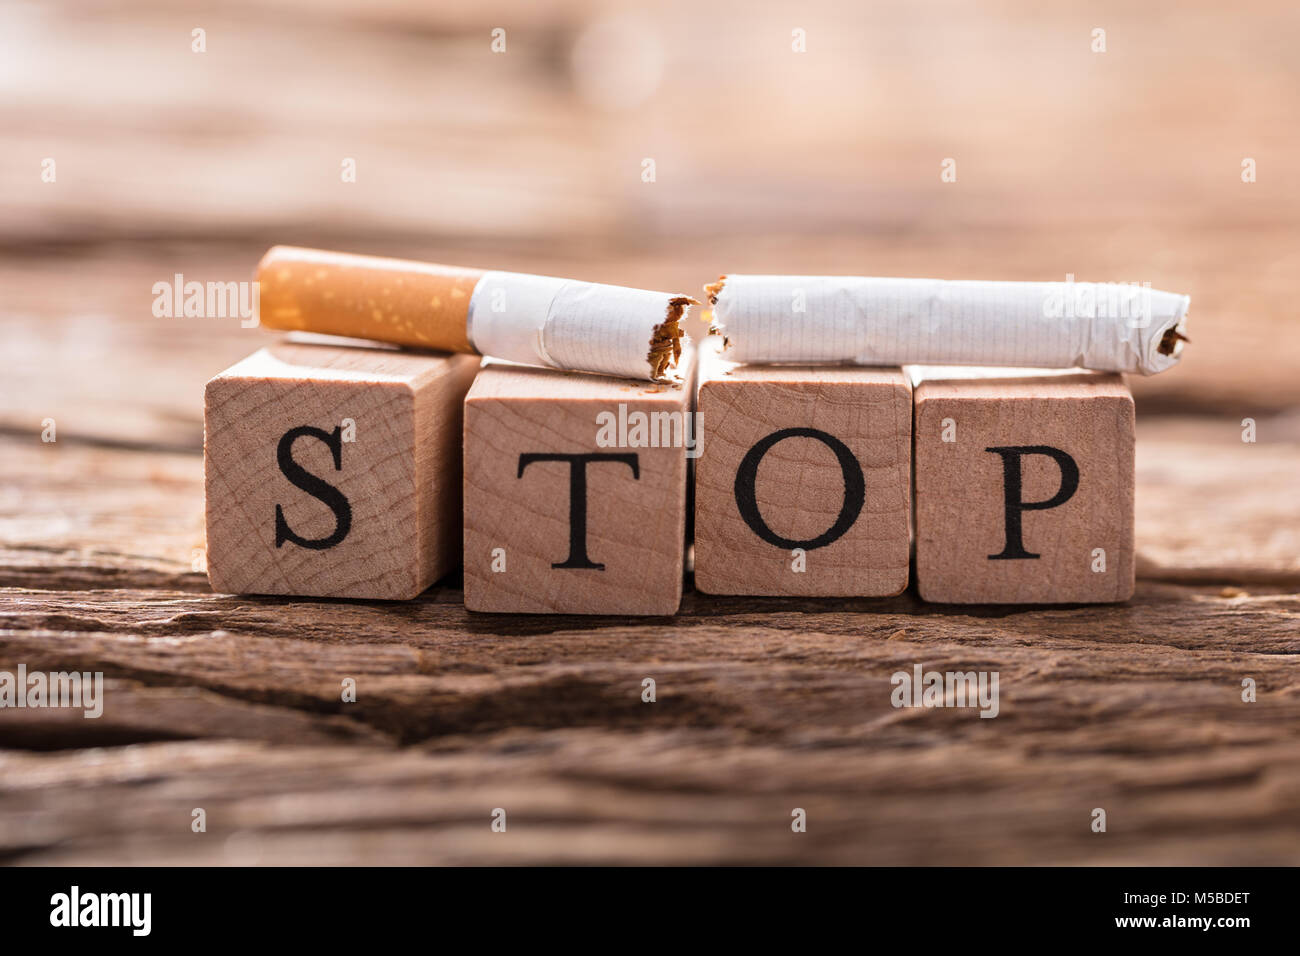 Close-up Of A Cigarette And Wooden Blocks Showing Stop Word On Desk - Stock Image